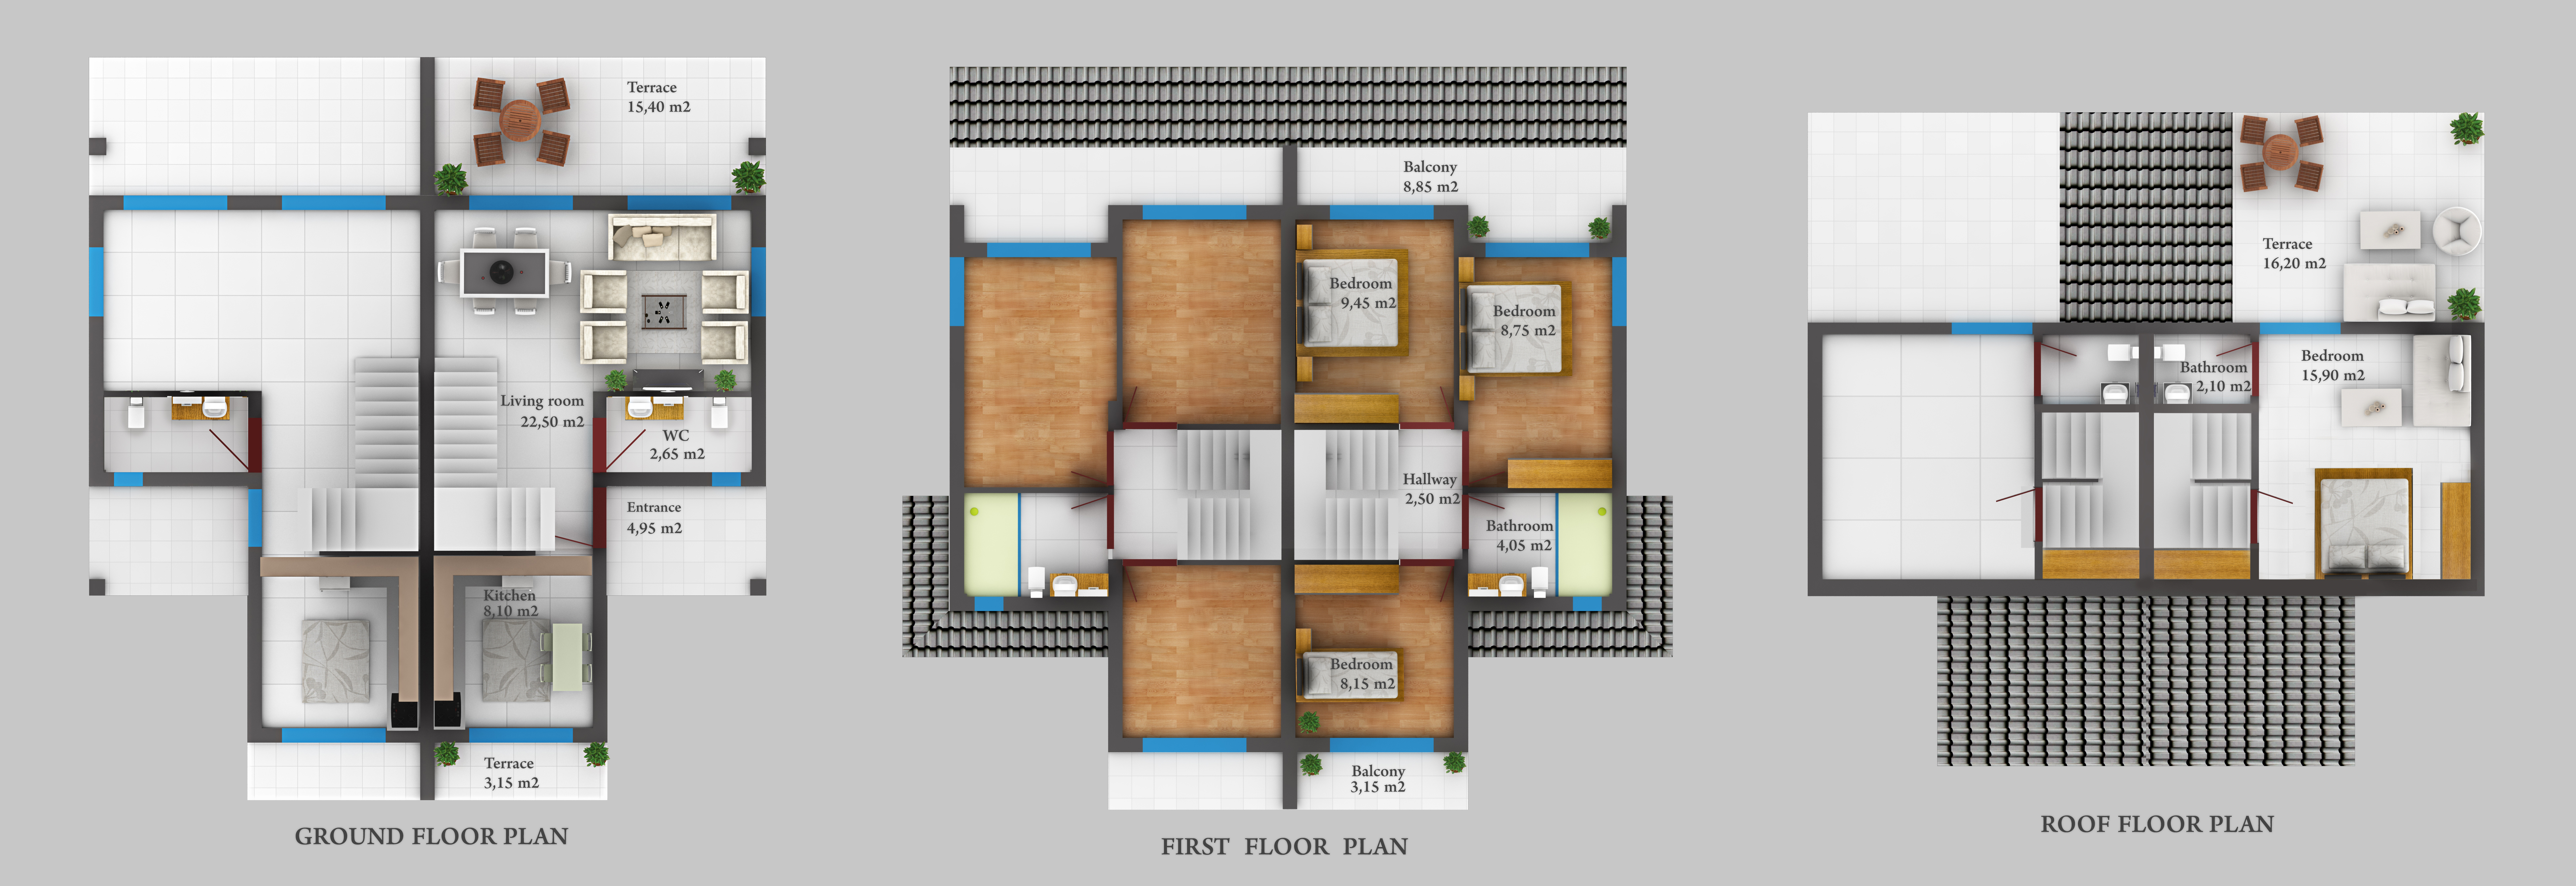 GROUND FIRST ROOF FLOOR PLAN